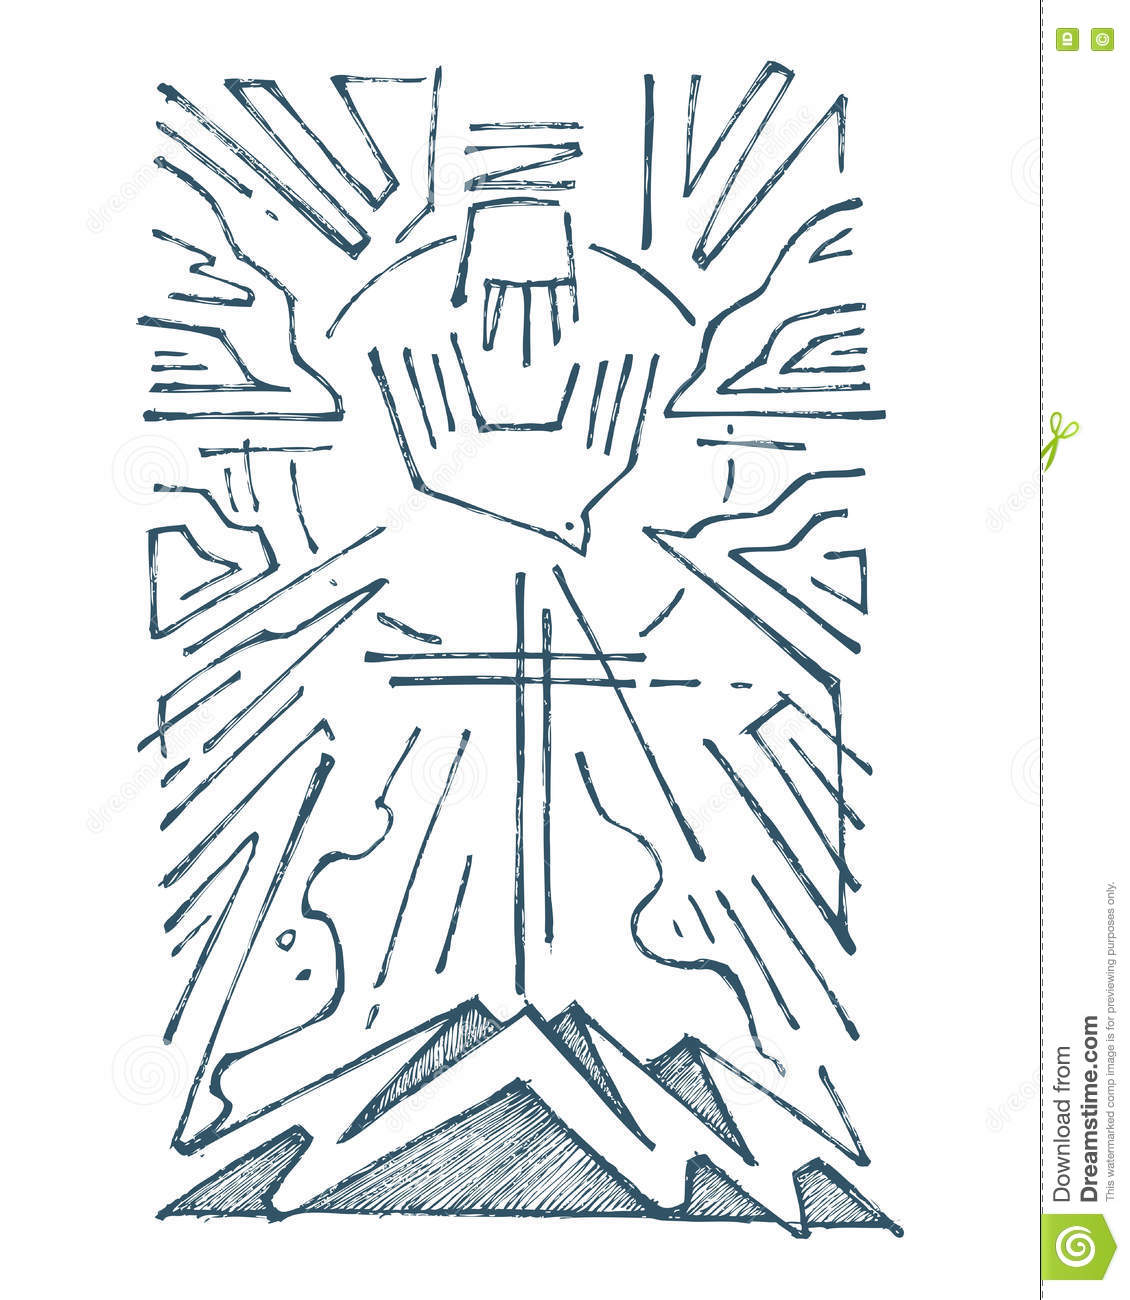 Holy trinity hand drawn illustration stock illustration holy trinity hand drawn illustration biocorpaavc Image collections